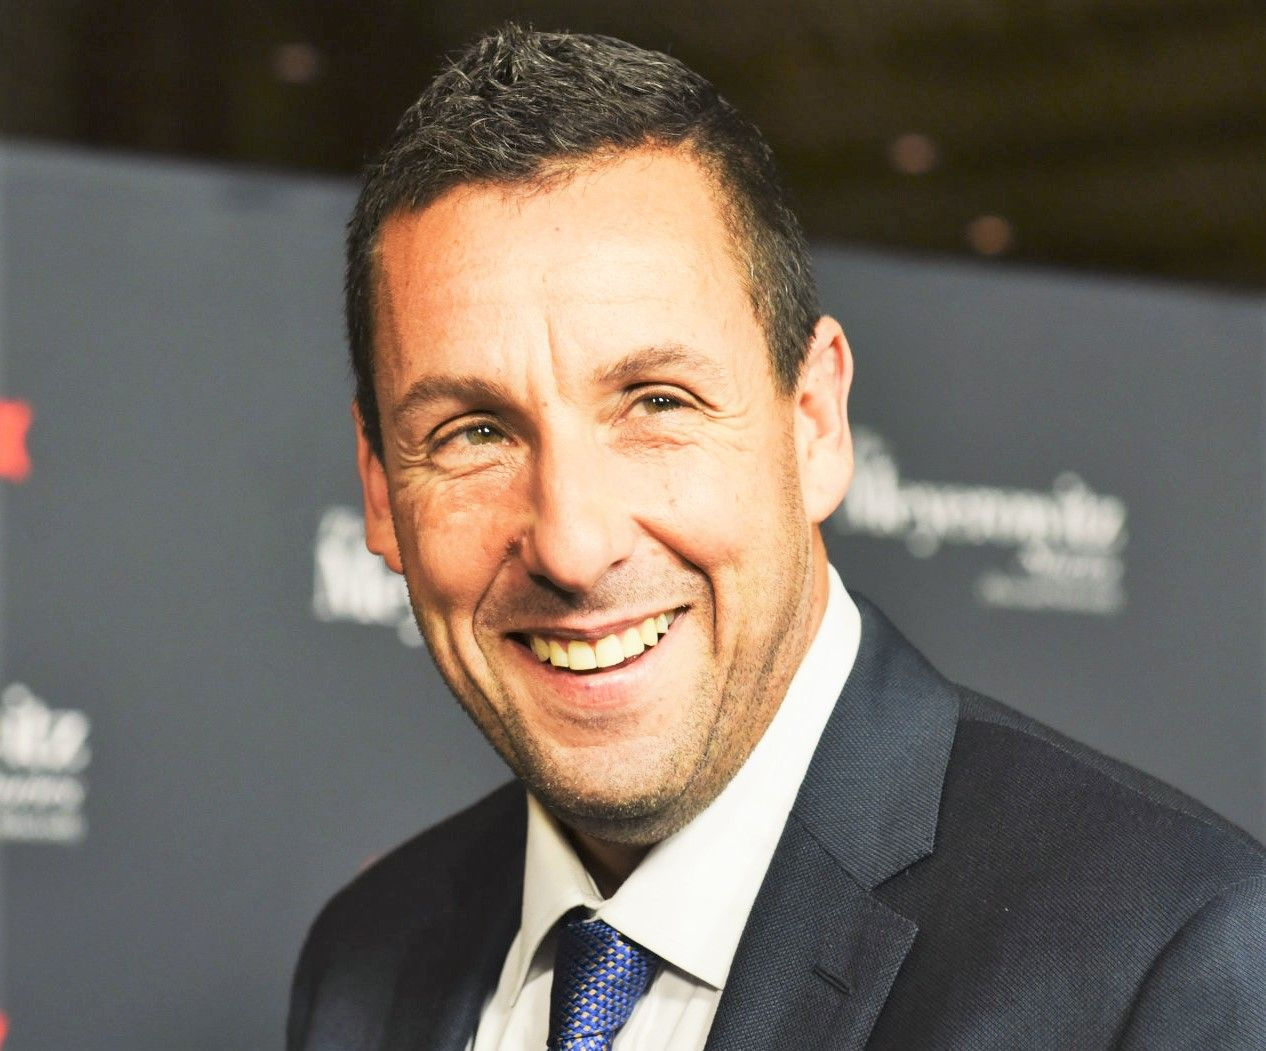 Adam Sandler Cosby Show adam sandler is almost as the hilarious actor becomes famous